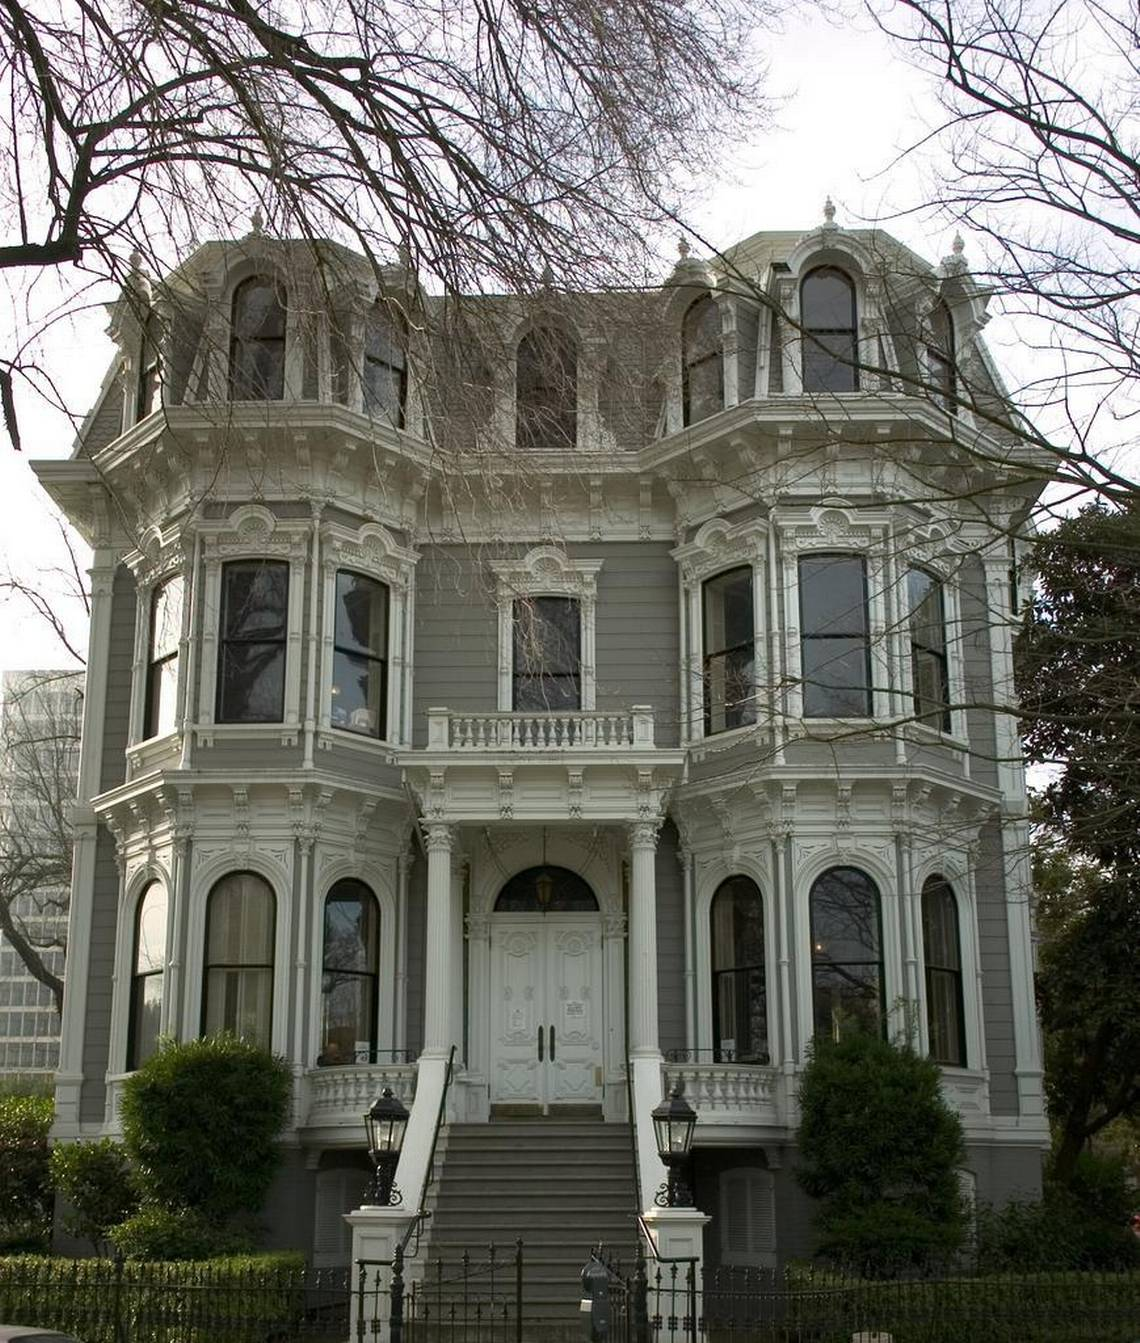 The 3-story structure has 13-foot high ceilings on the first floor and 12-foot ceilings on the second. The entire structure was build 8 feet above street level to avoid the catastrophic floods that plagued Sacramento's earlier history.